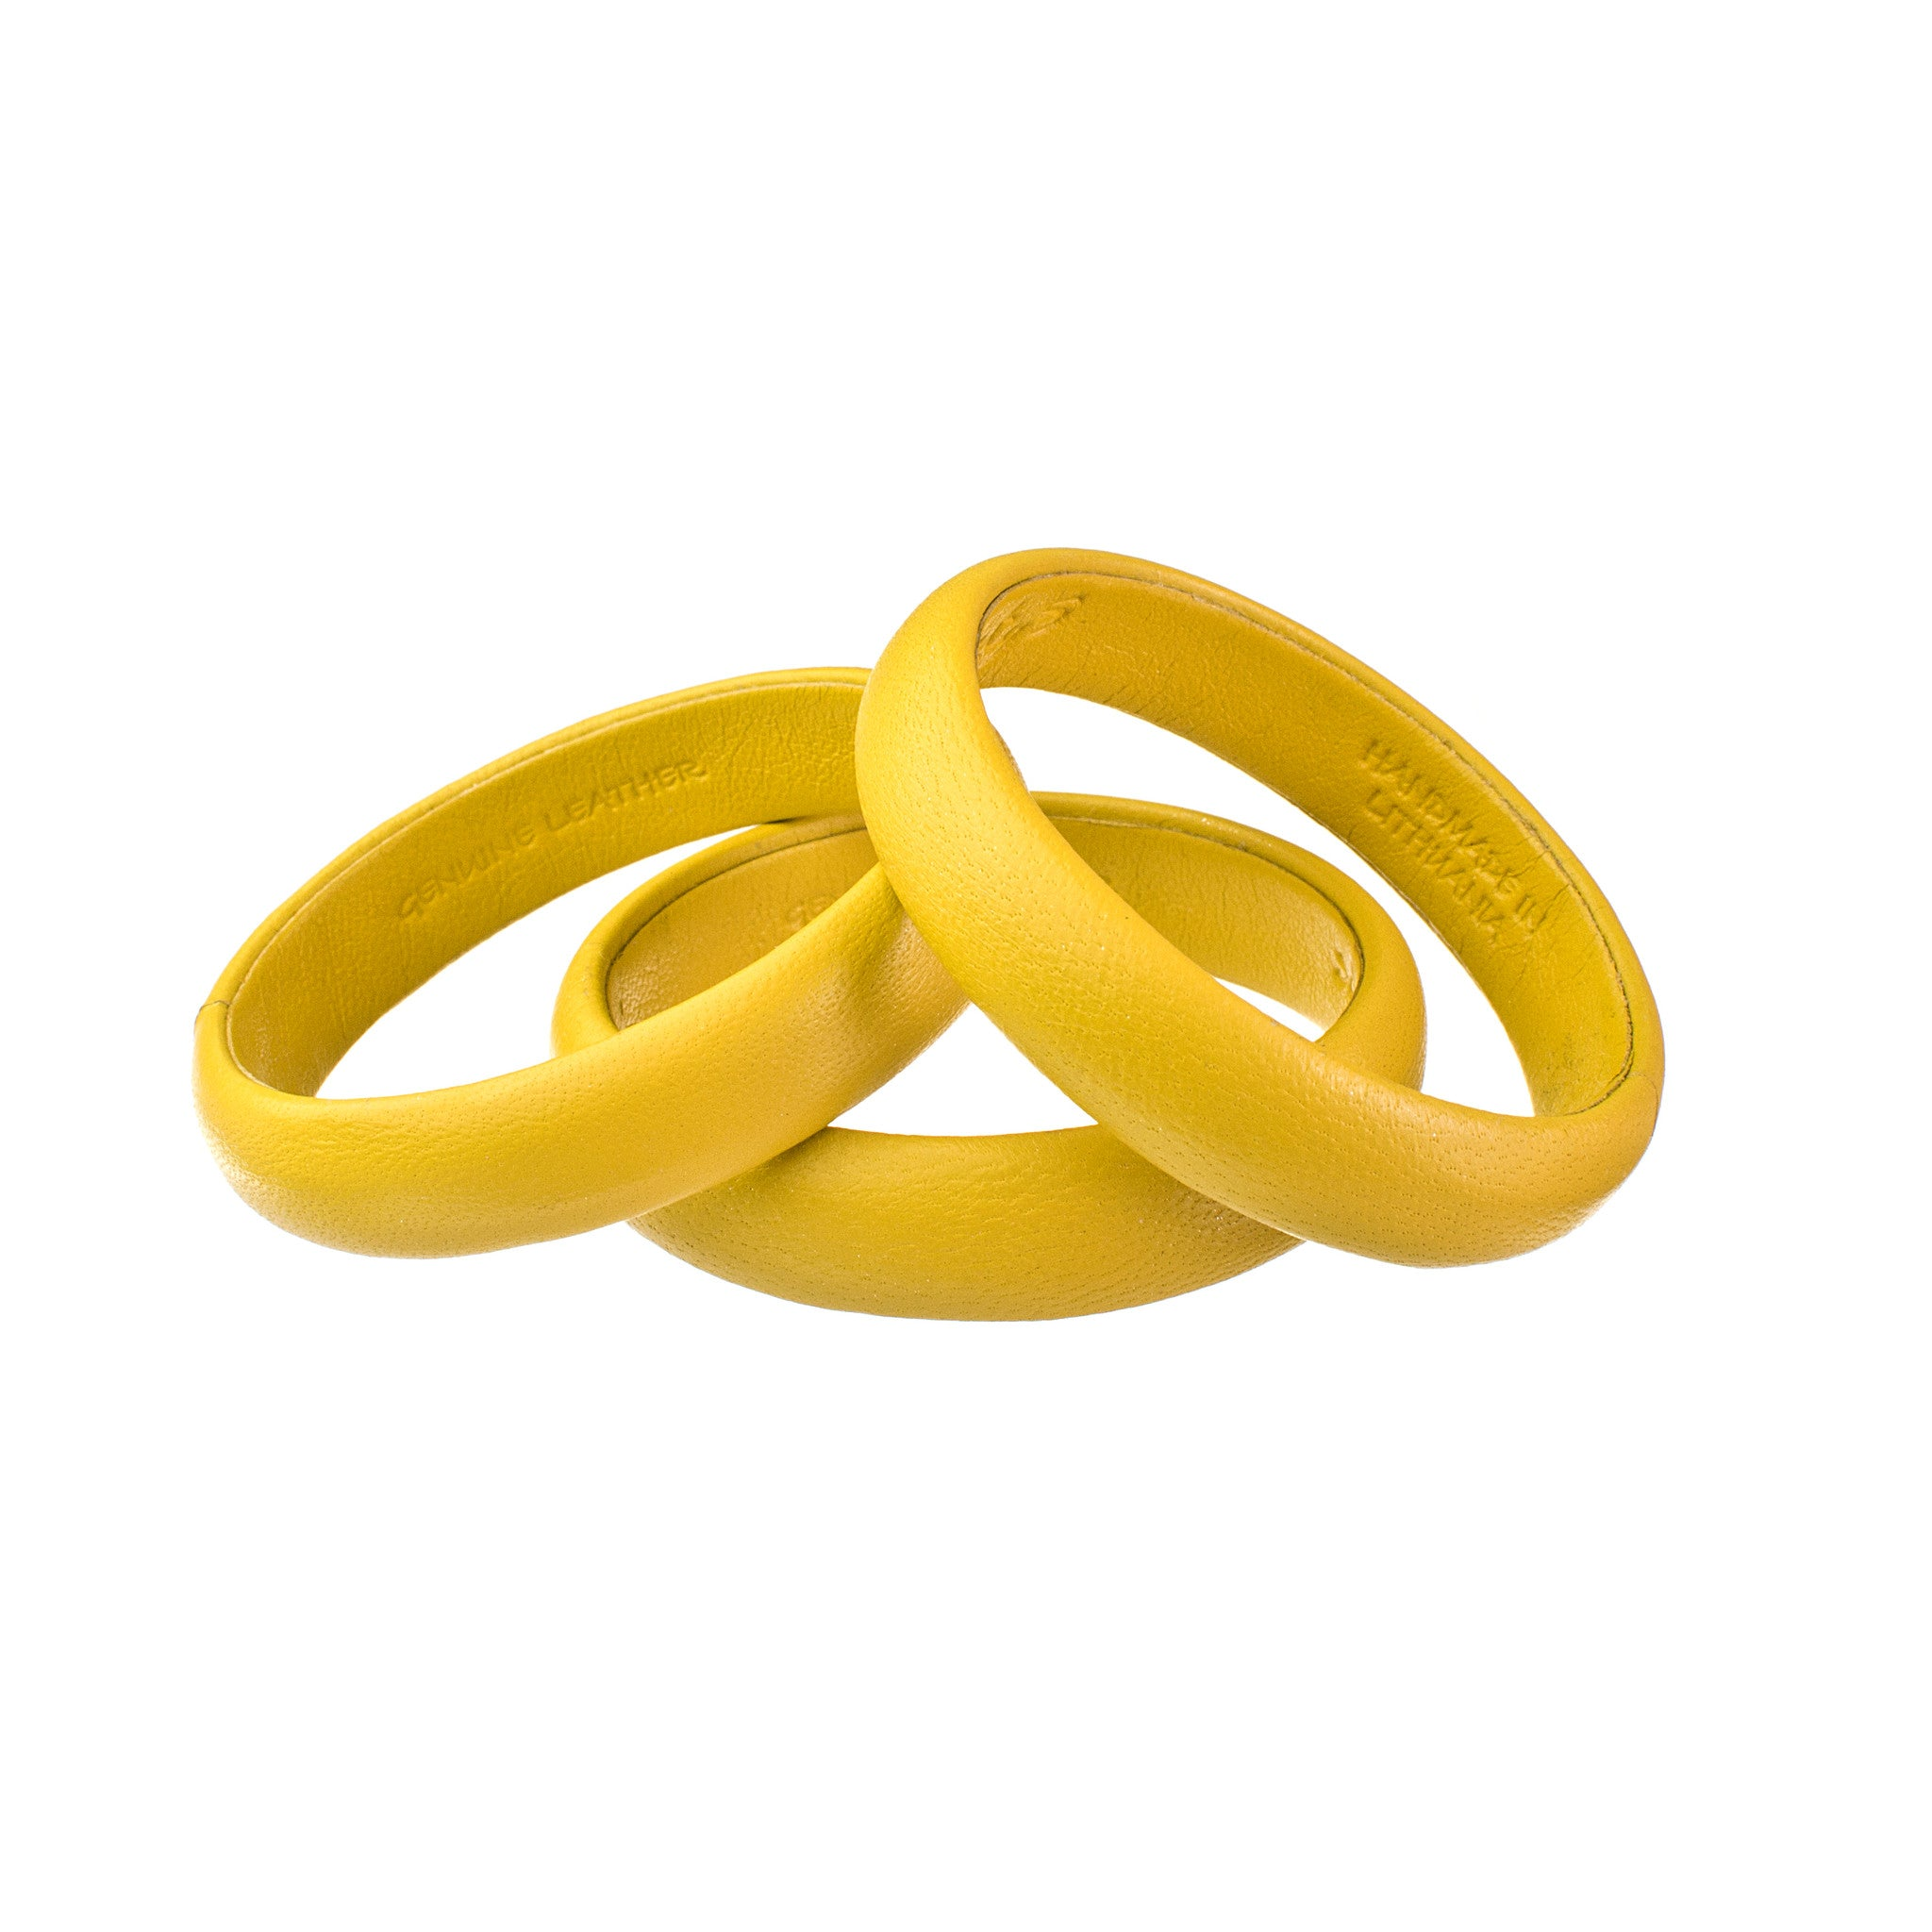 Bright Yellow Small Leather Bangle Bracelet sd1Twenty5 stack